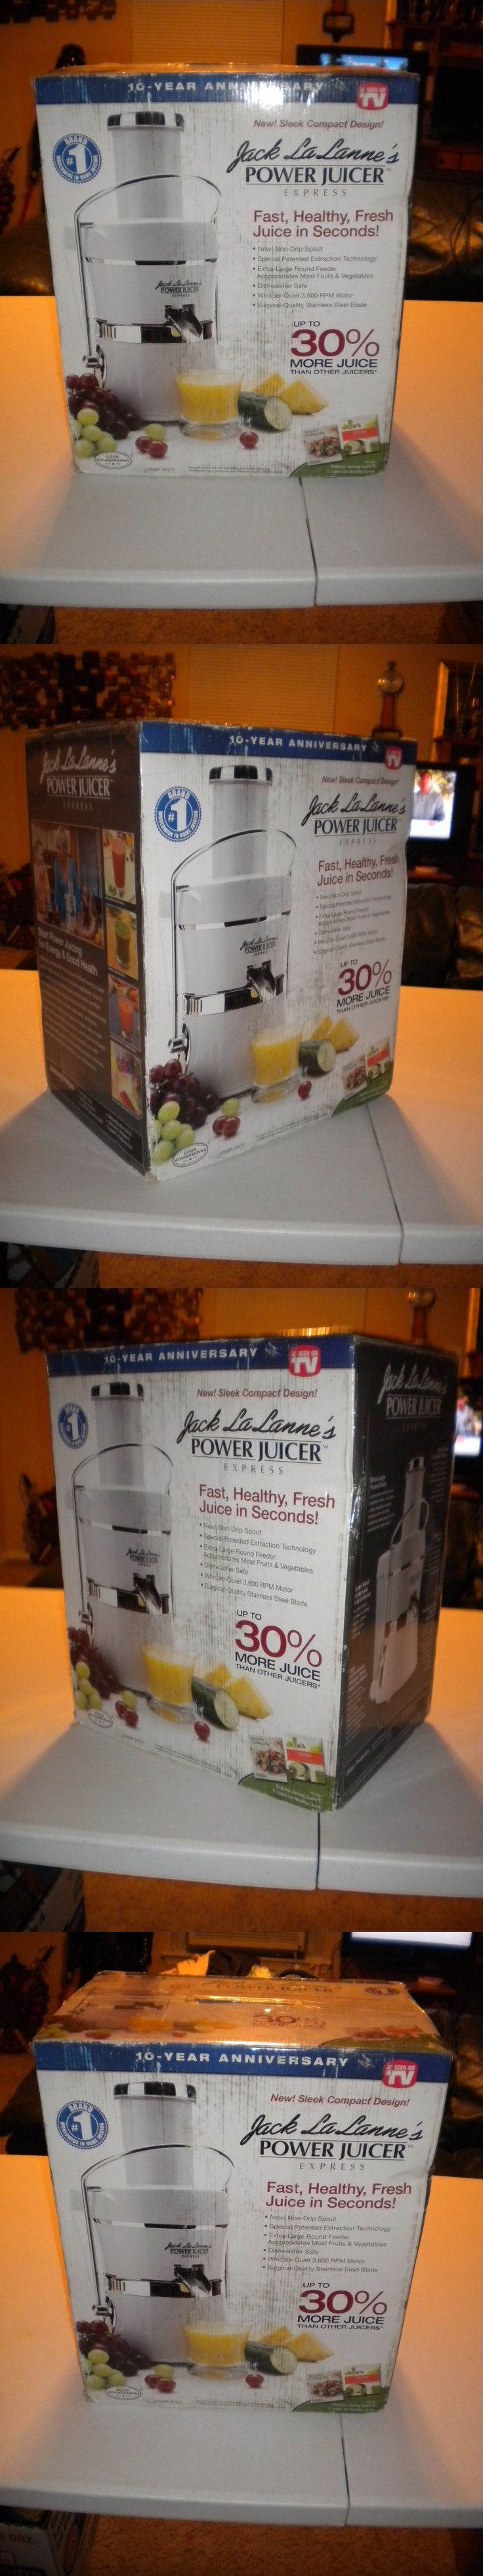 Juicers 20677: New Jack Lalanne S Power Juicer Express New In Box -> BUY IT NOW ONLY: $99.99 on eBay!